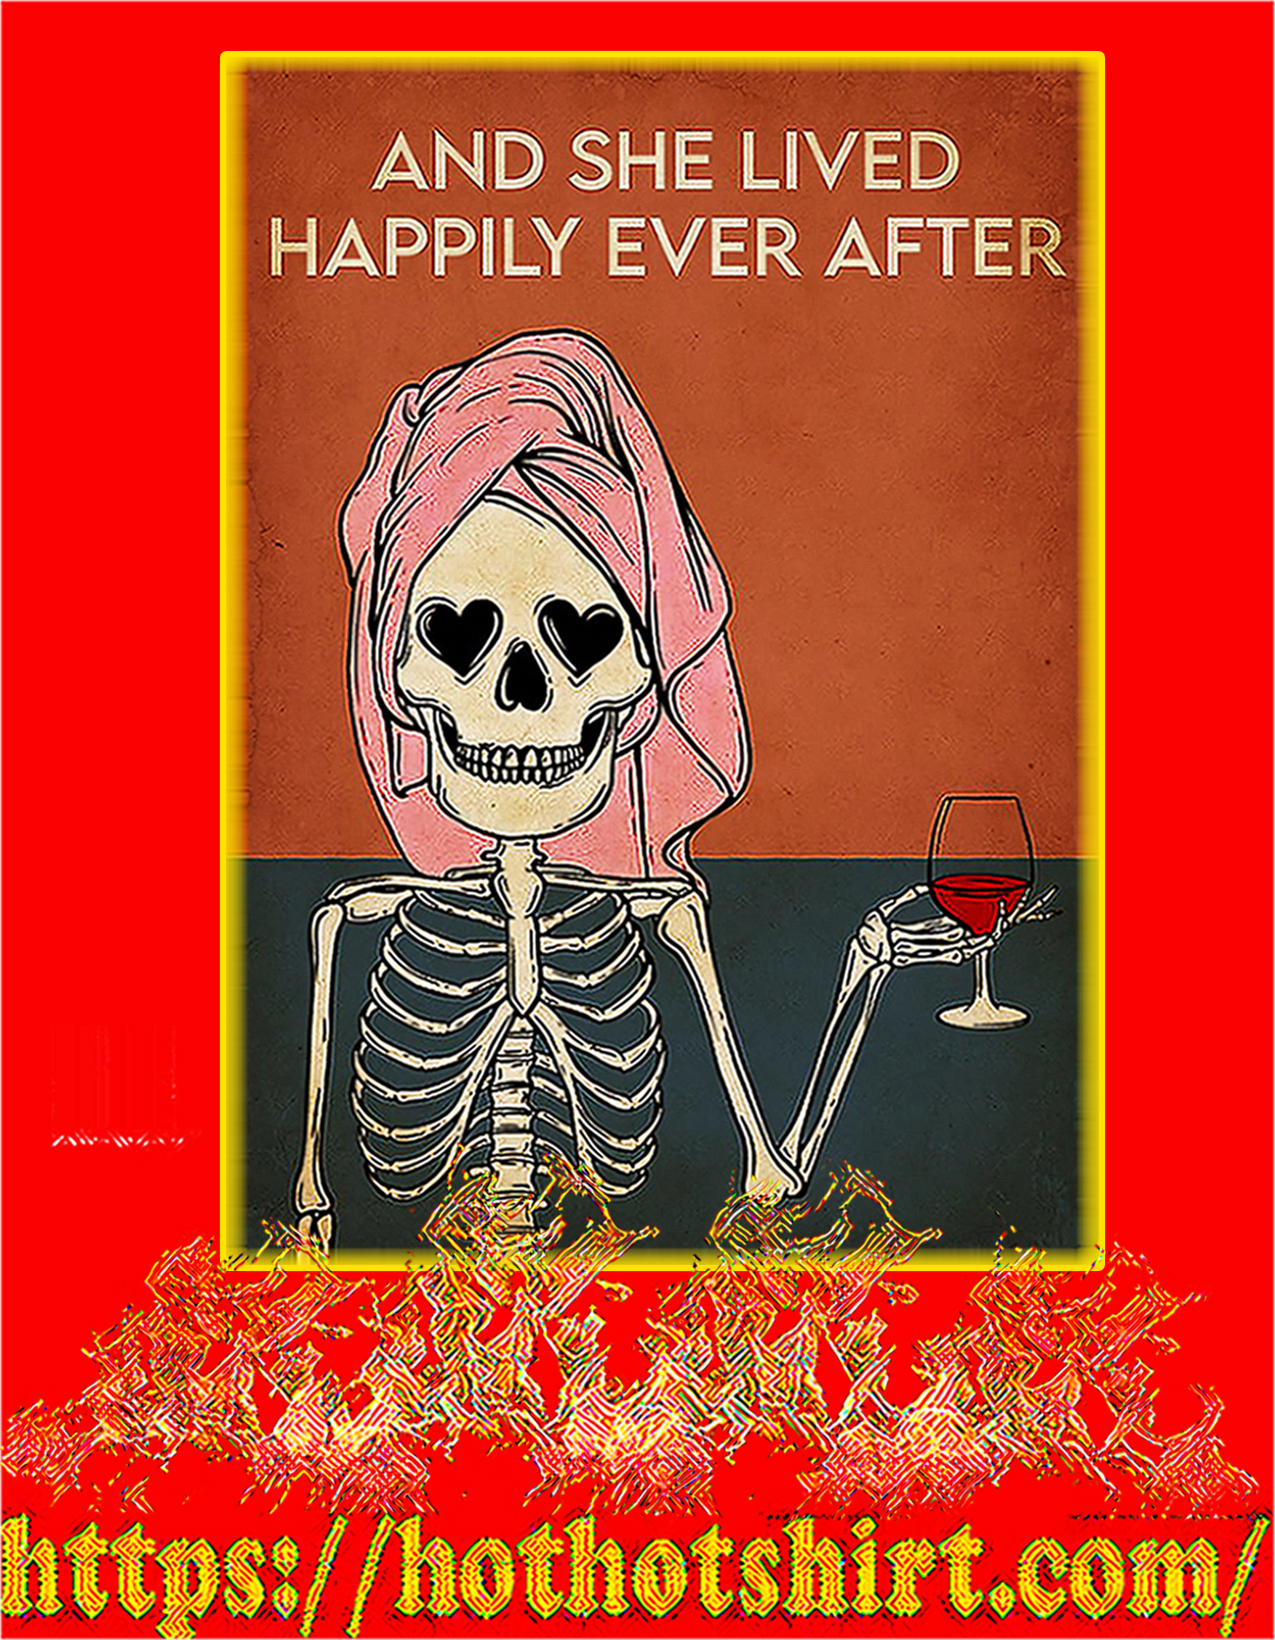 Skeleton wine And she lived happily ever after poster - A2